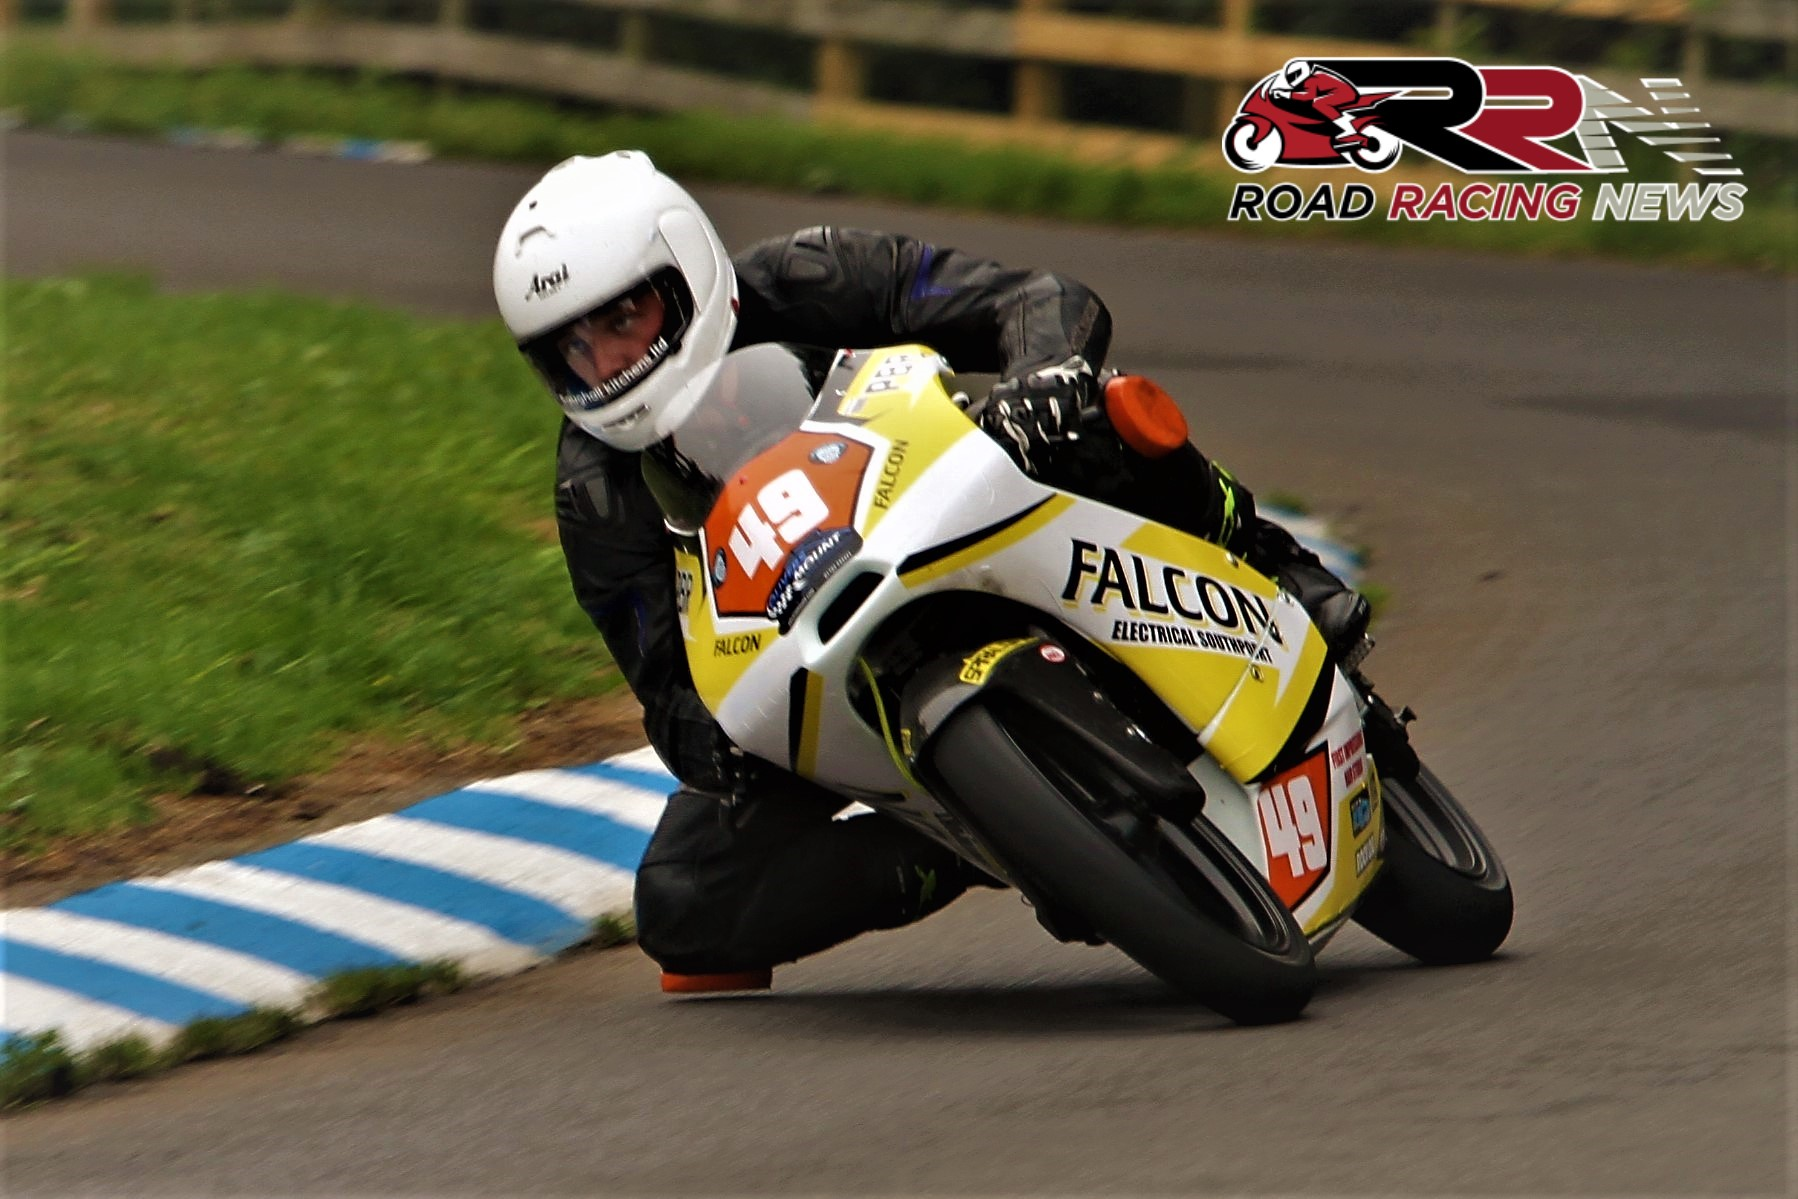 Oliver's Mount Top 8: Andy Jackson